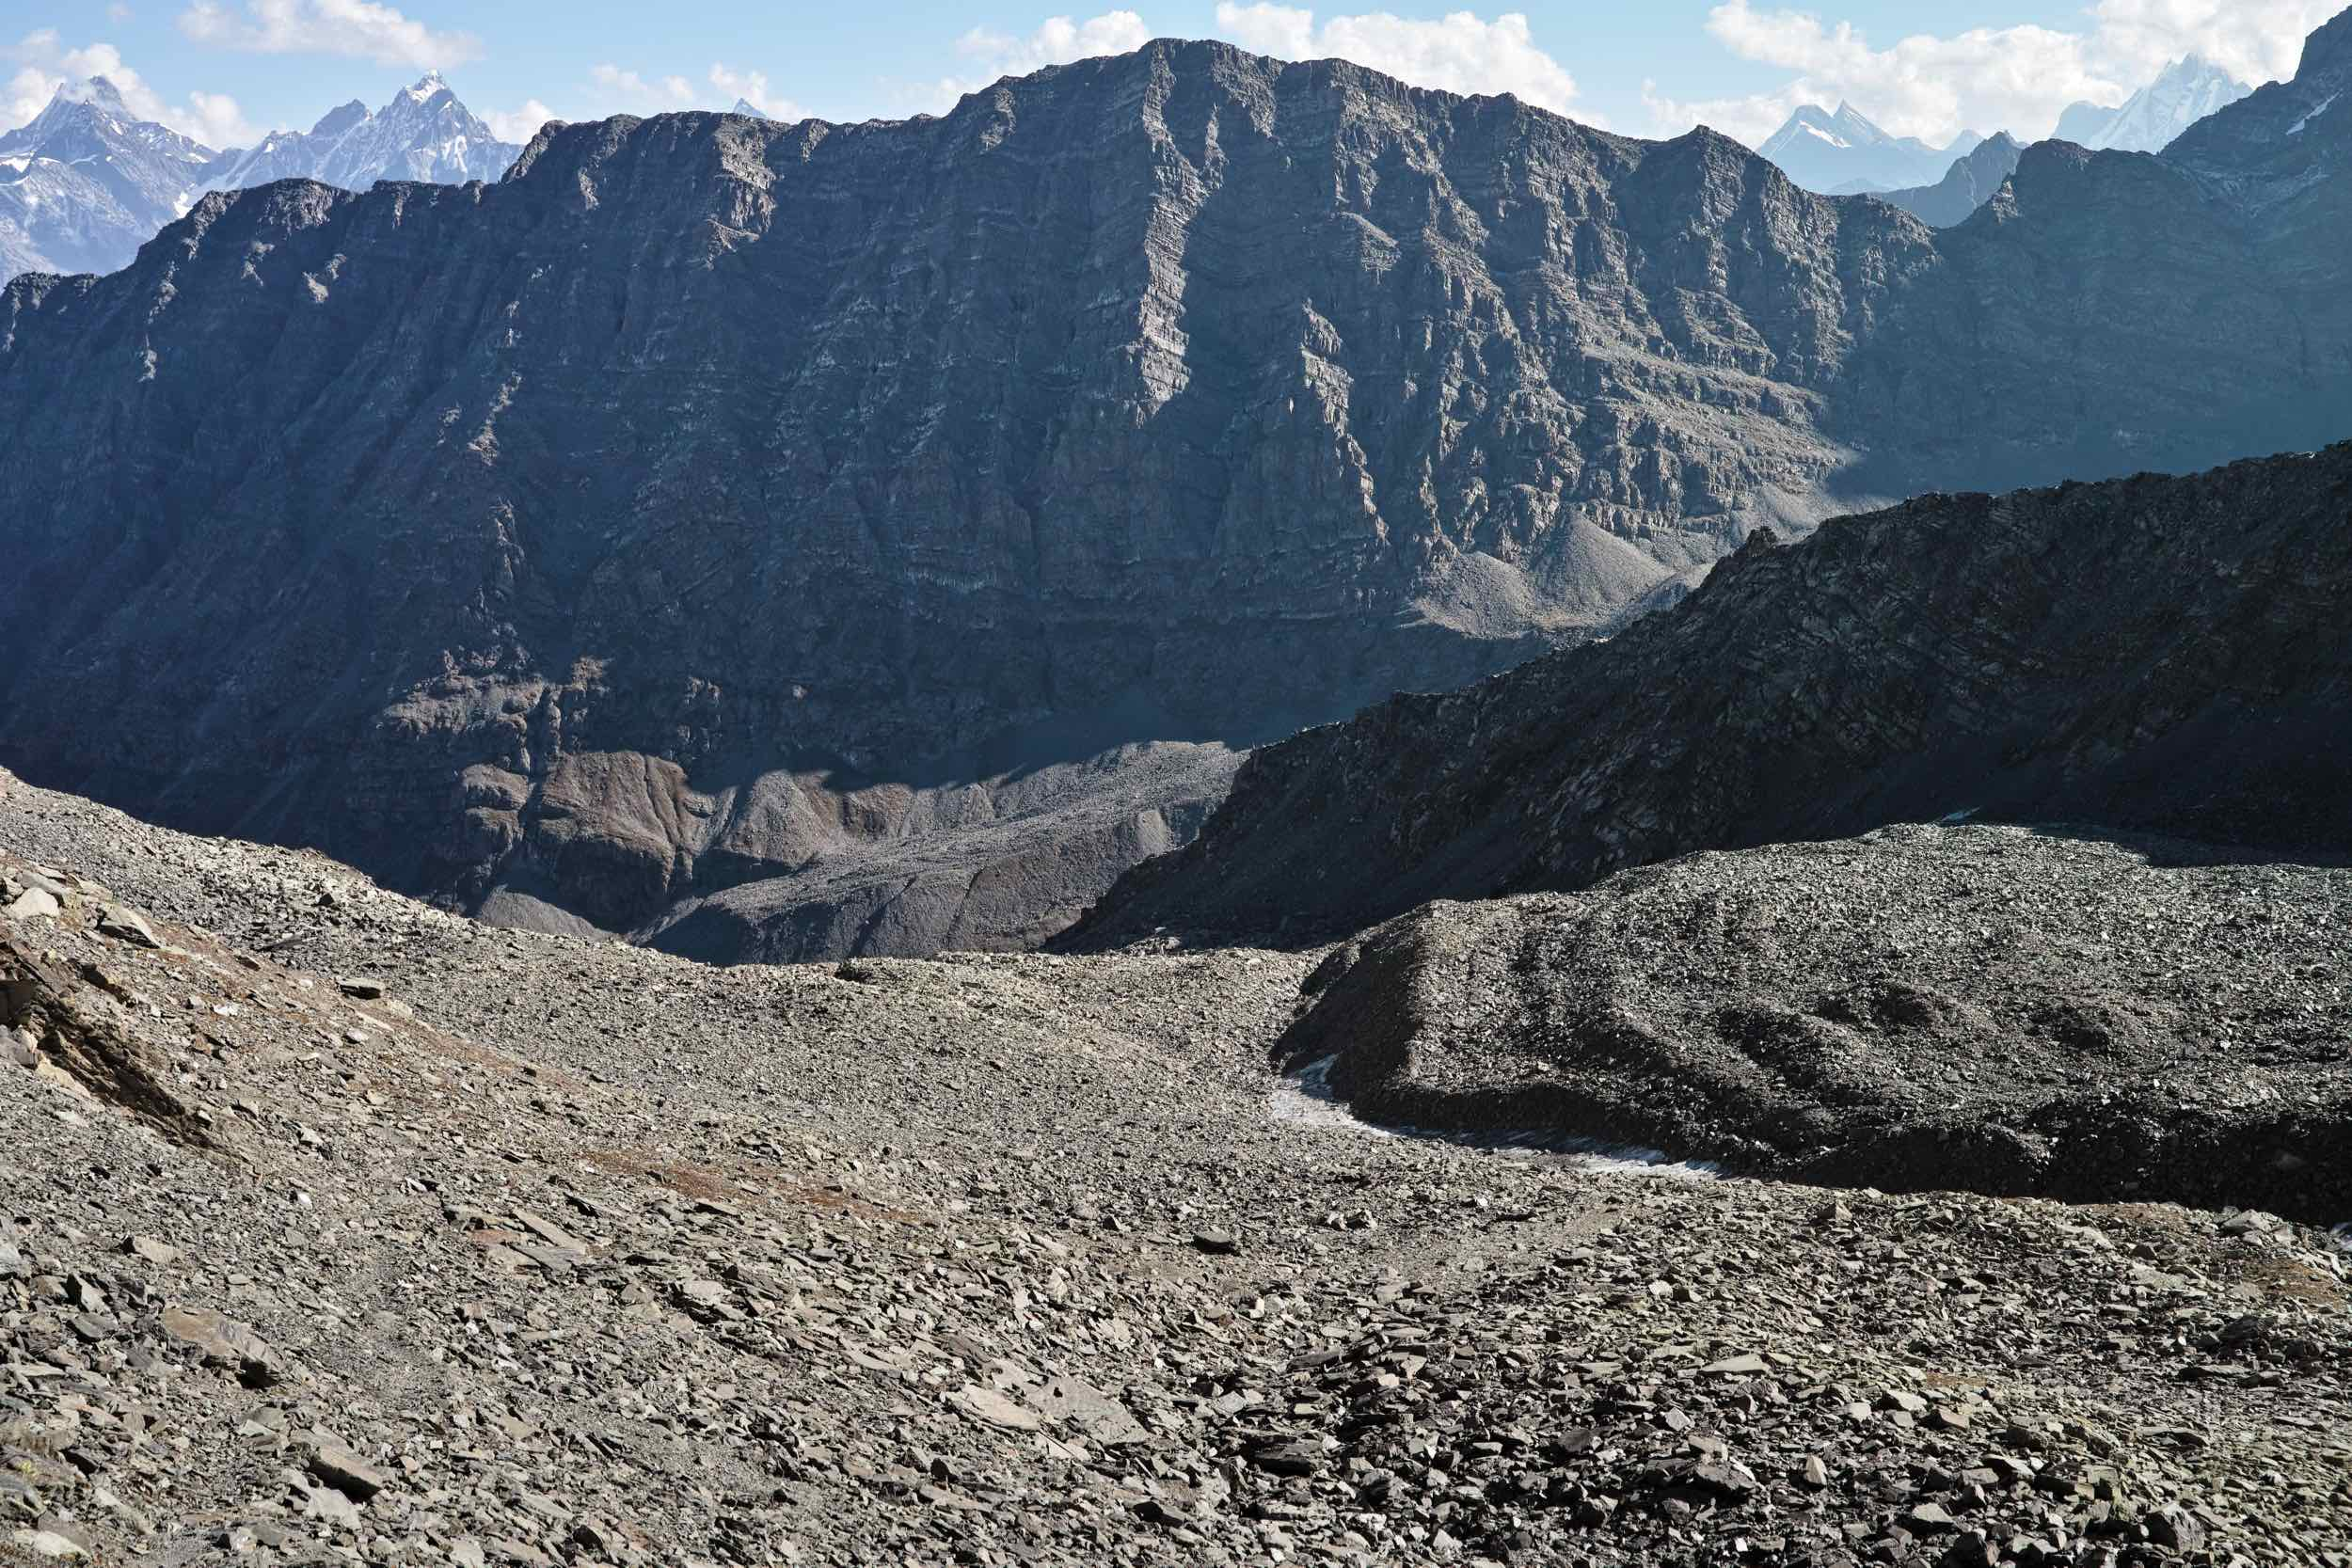 The trail from Mani Mahesh to Kalah pass is all shale and moraine